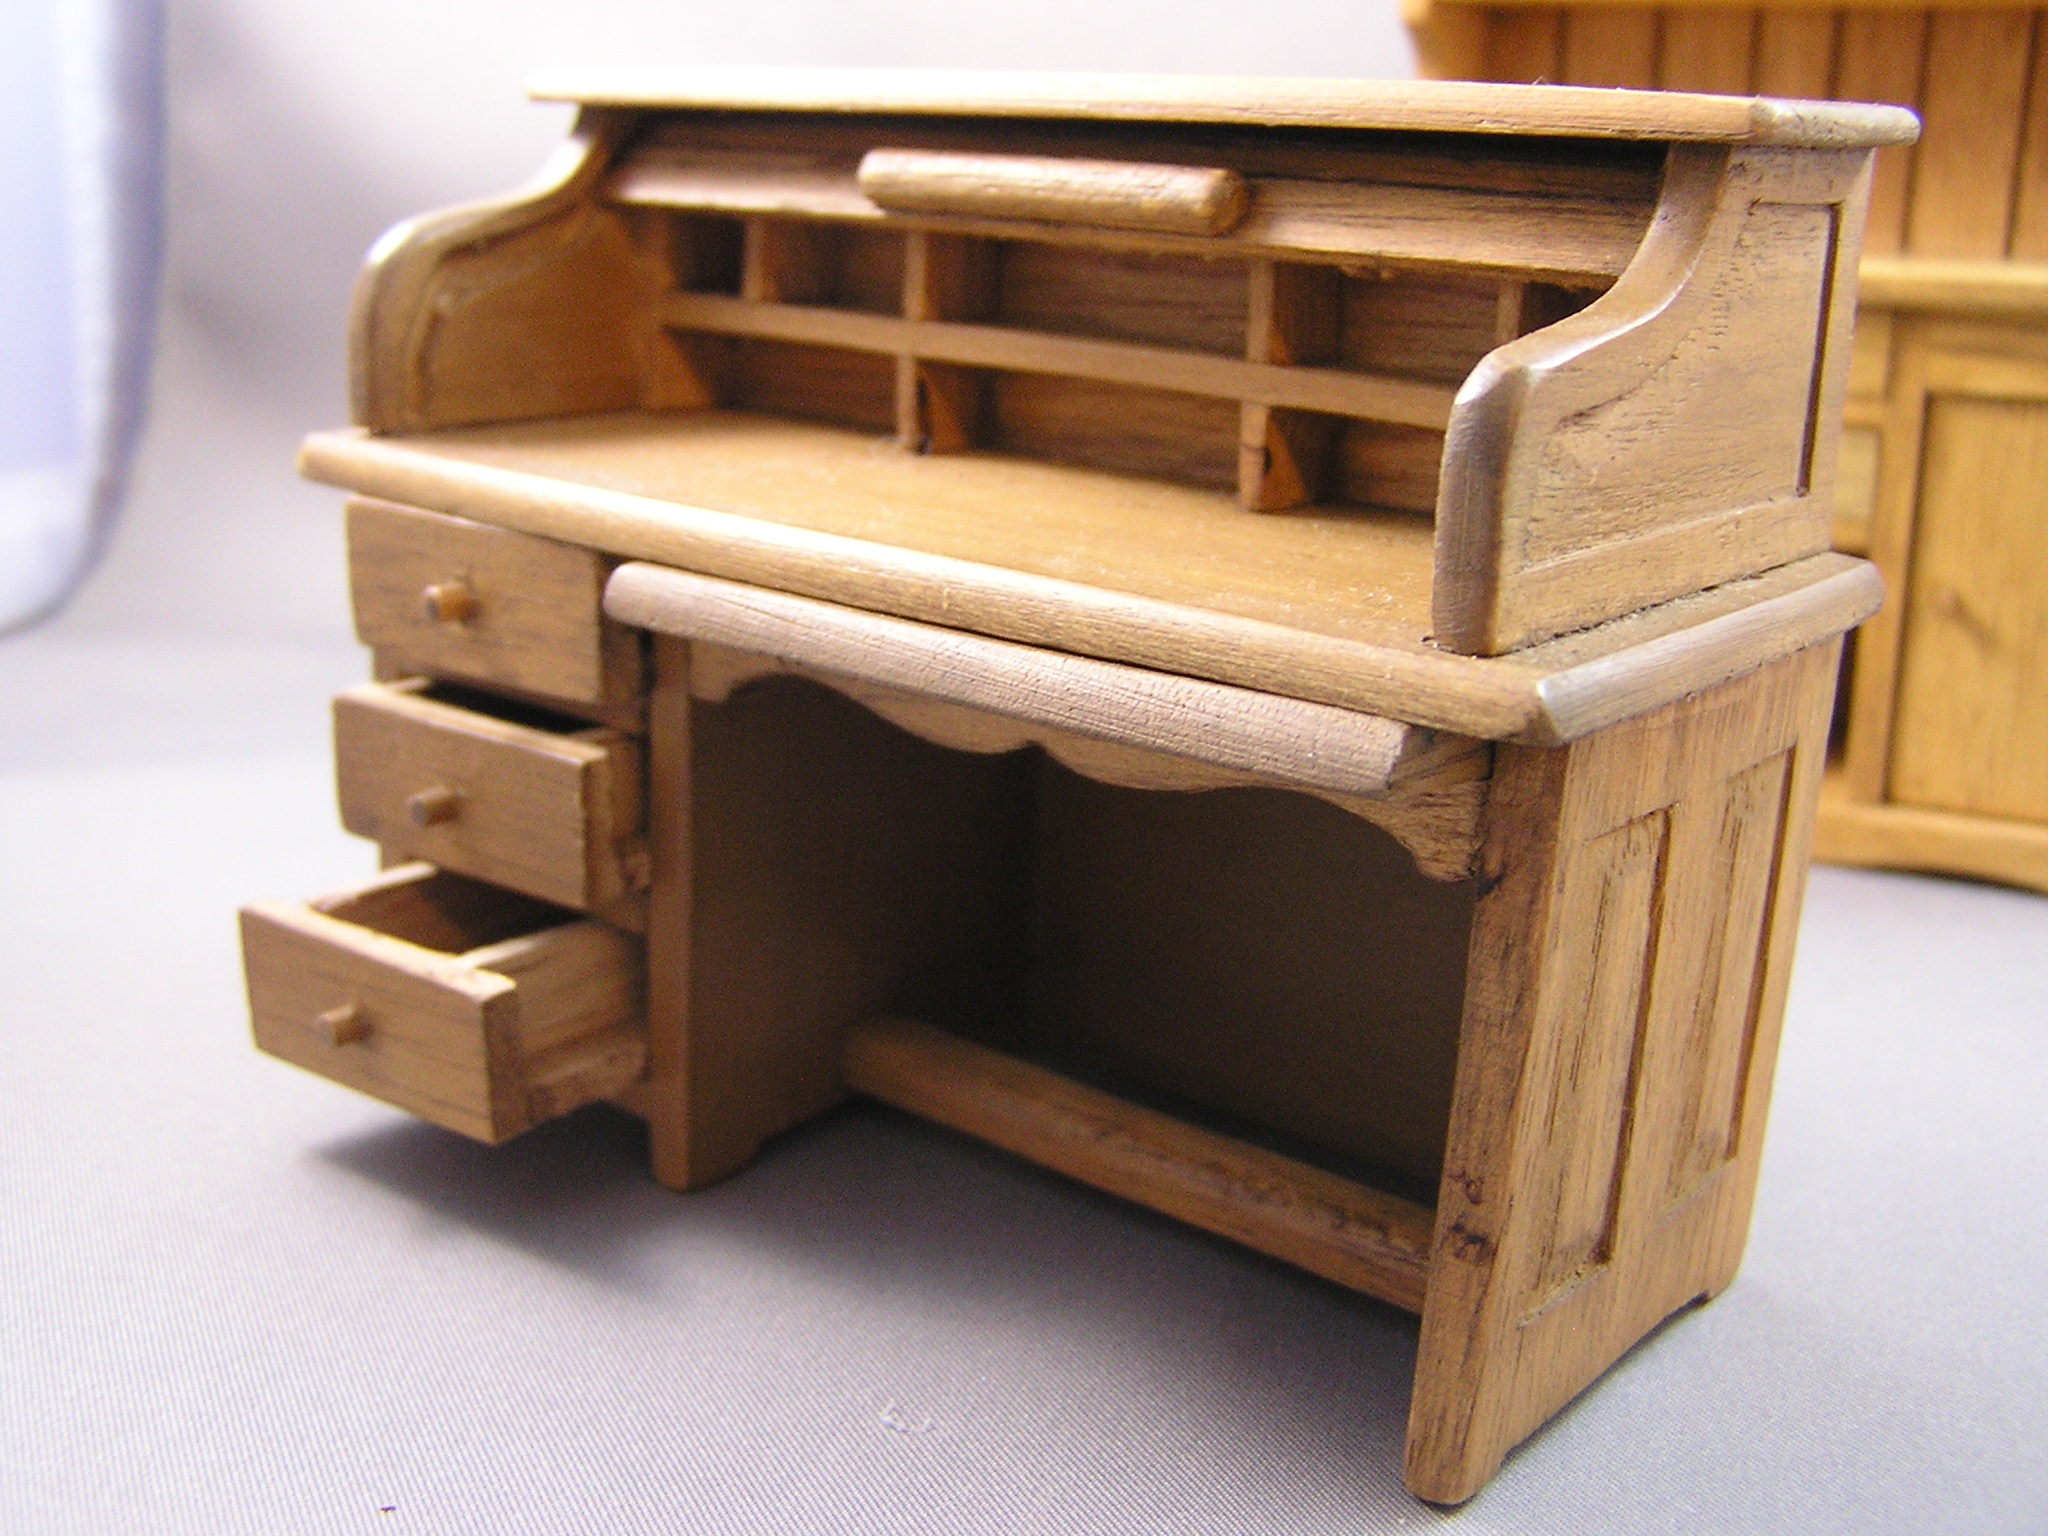 Early American Roll Top Desk by Sonia Messer #450 - Click Image to Close